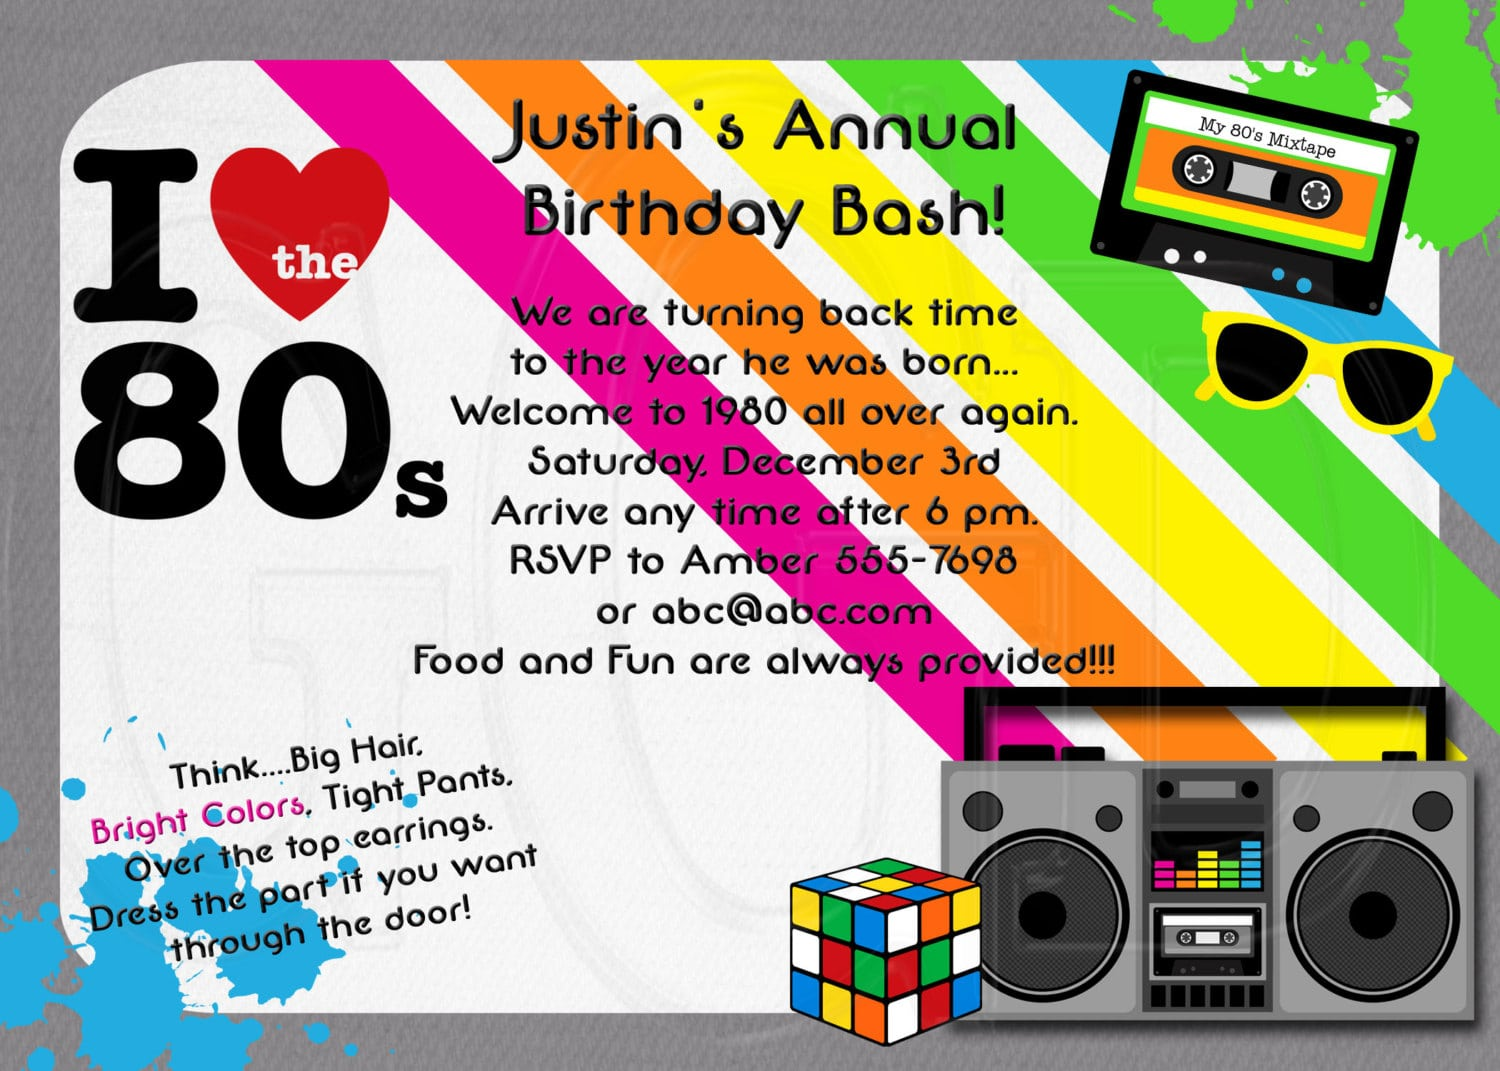 80s Theme Party Invitation Wording - Mickey Mouse Invitations Templates